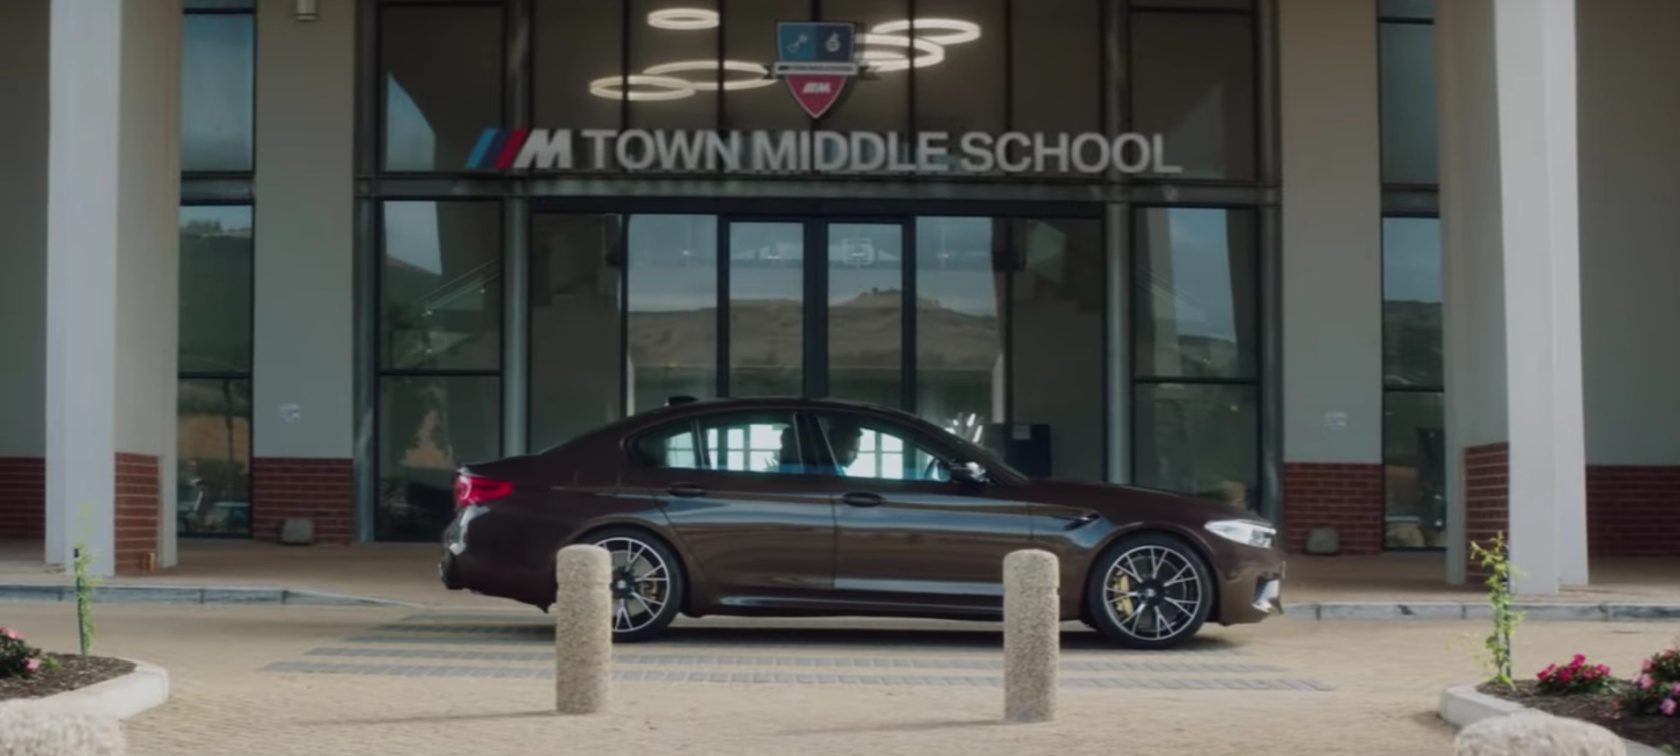 School in BMW M Town.